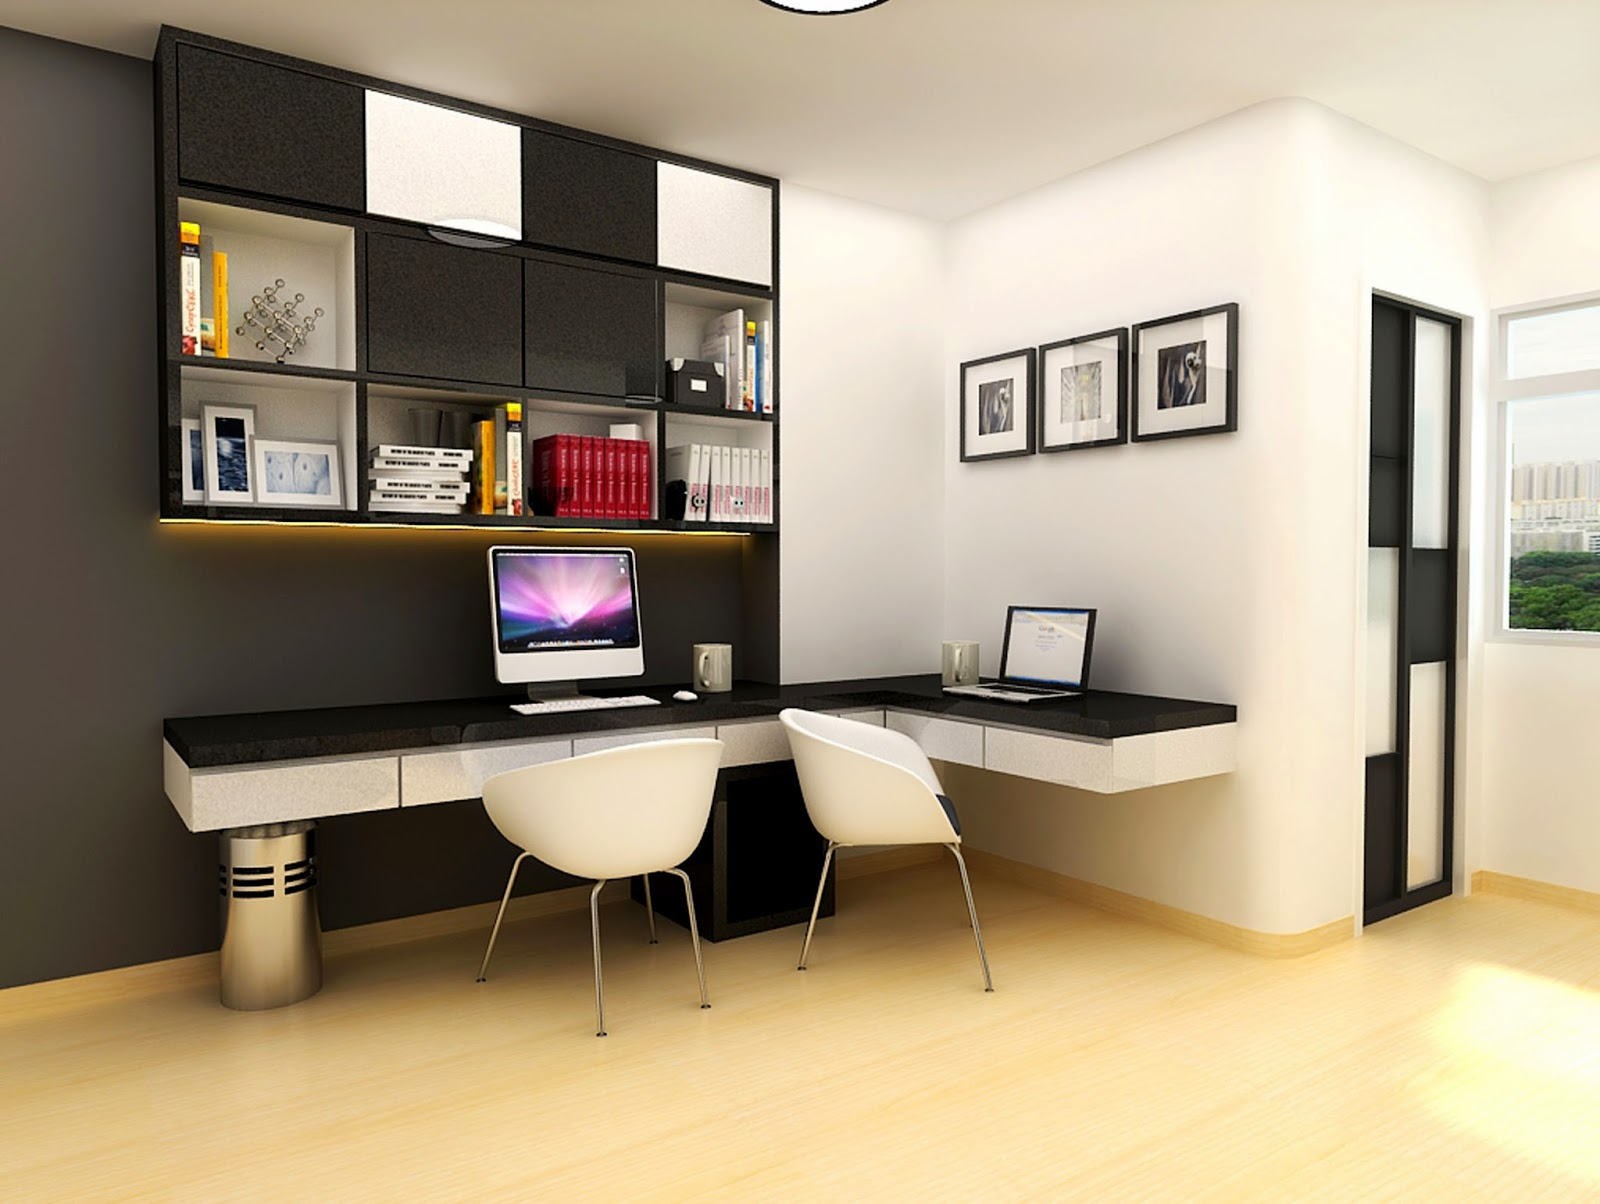 Decorating a study room in your home a room for everyone for Decorating ideas for computer room